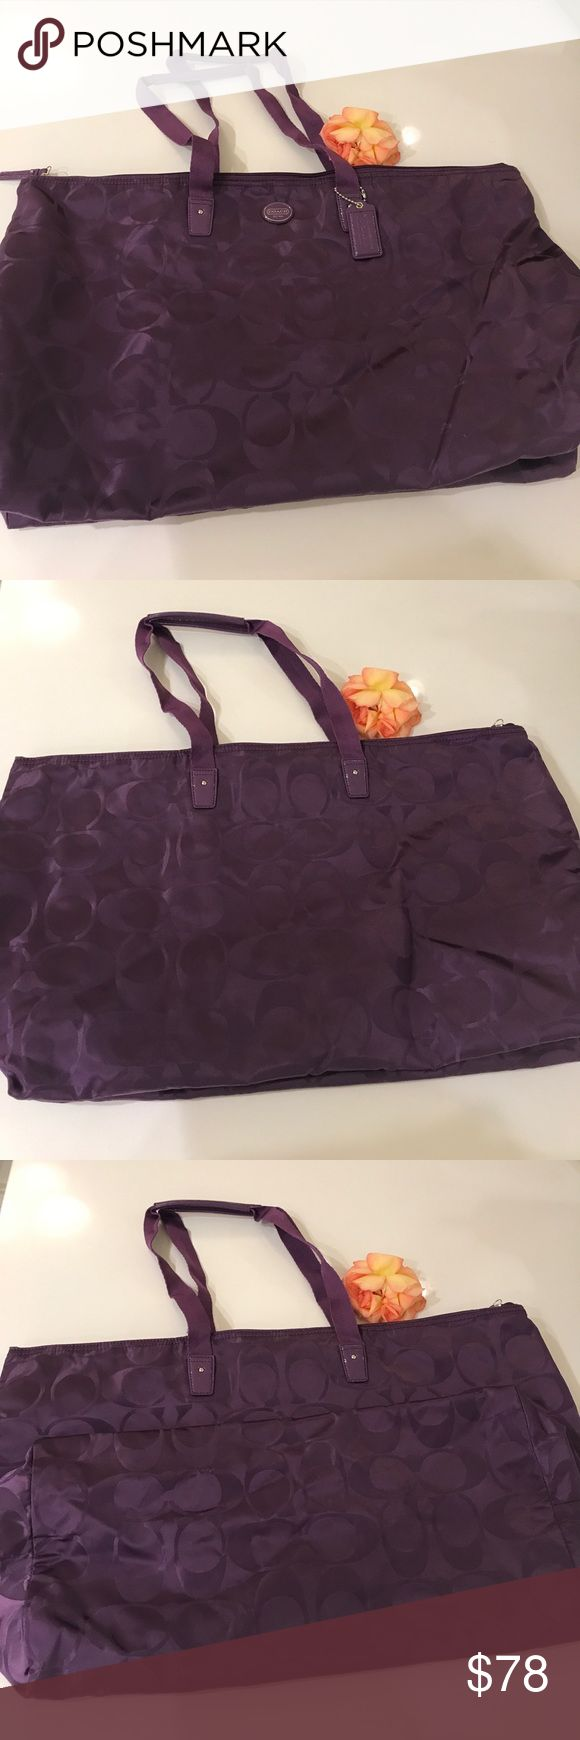 💯Authentic Coach Cute C Print Travel Bag 👜 👜NWOT Coach Travel Bag, very cute design and casual style, easy to go with any outfits, super comfy and soft to wear, perfect for travels/weekends/ shopping, never used in perfect condition 🎀🎀🎀                                                                                     👛👛👛No Trade, sorry 🛍🛍🛍                                           💰💰💰Bundle and Save💸💸💸 Coach Bags Travel Bags